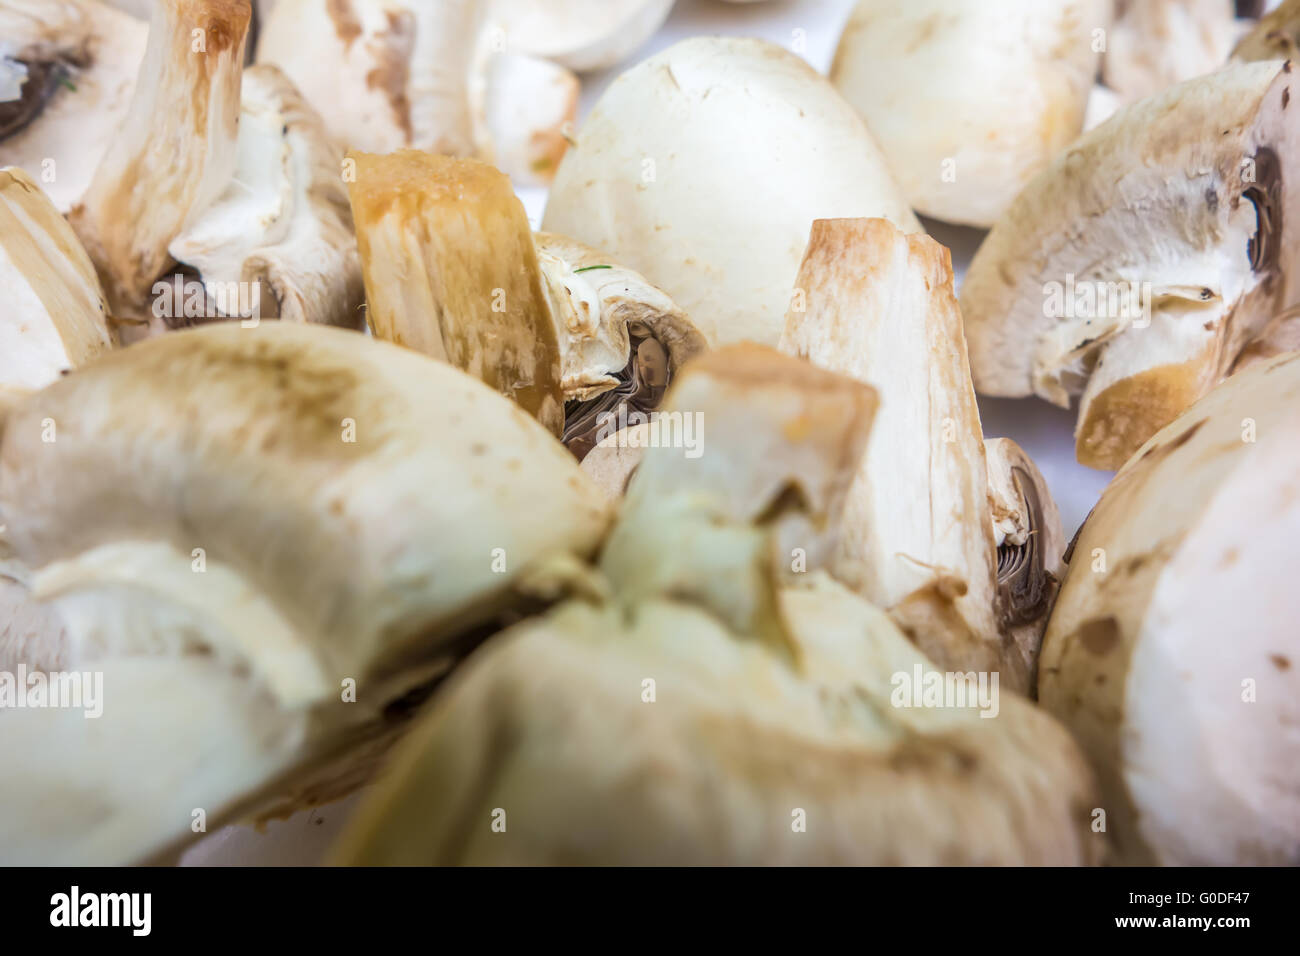 raw sliced mushrooms ready for grilling - Stock Image